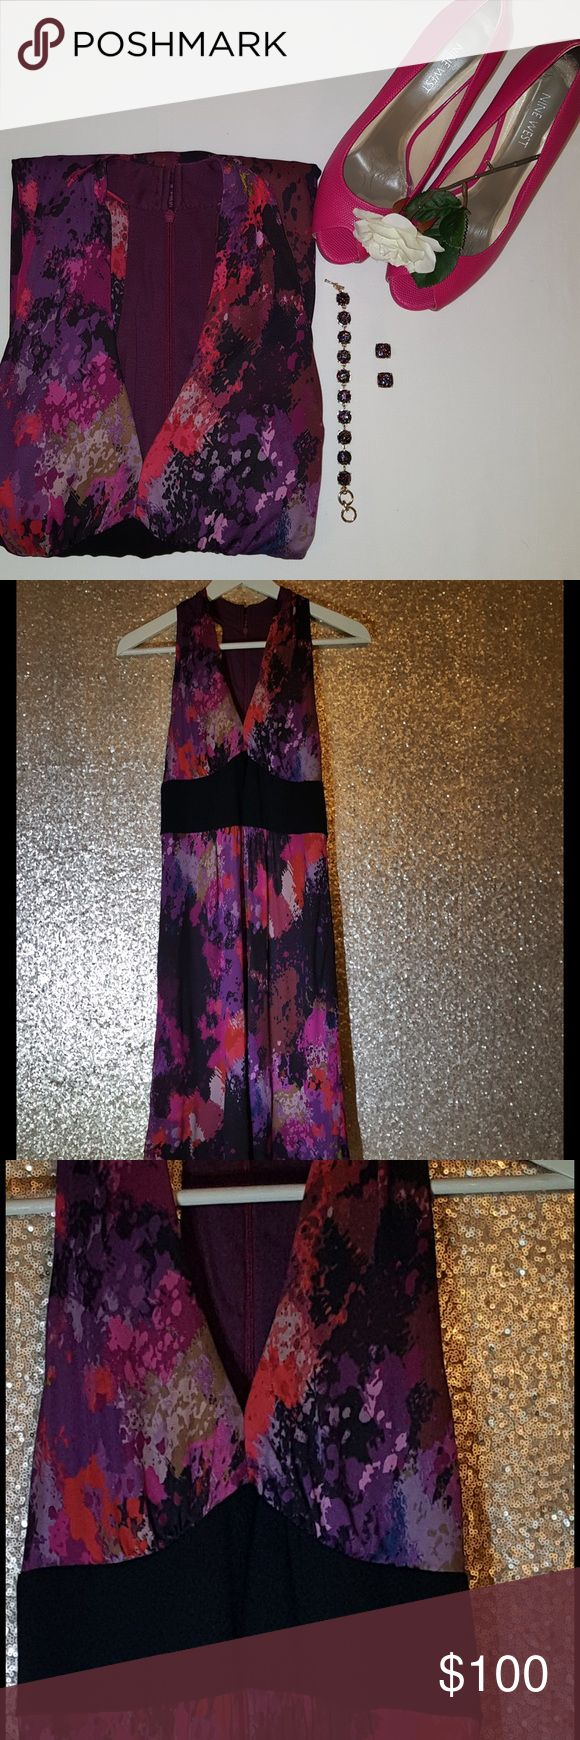 TRINA TURK DRESS IN DEEP JEWEL TONE COLORS 💗💗💗💗💗💗💗 WOW THIS DRESS 💗💞💞💞💞💞💗 IS GORGEOUS. 💗💞💓👅💓💞💗 IT IS IN LIKE  💗💞💓📍💓💞💗 BRAND NEW 💗💞💓💓💓💞💗 CONDITION. ANY  💗TRINA TURK💗  ITEMS WITH PICS 💗💗💗💗💗💗💗 U LIKE JUST ASK. ALL PROCEEDS FROM MY SALES TO BENEFIT MY HUBBY WITH CANCER. 💗💗💗💗💗💗💗💗💗💗💗💗💗💗 Trina Turk Dresses Midi